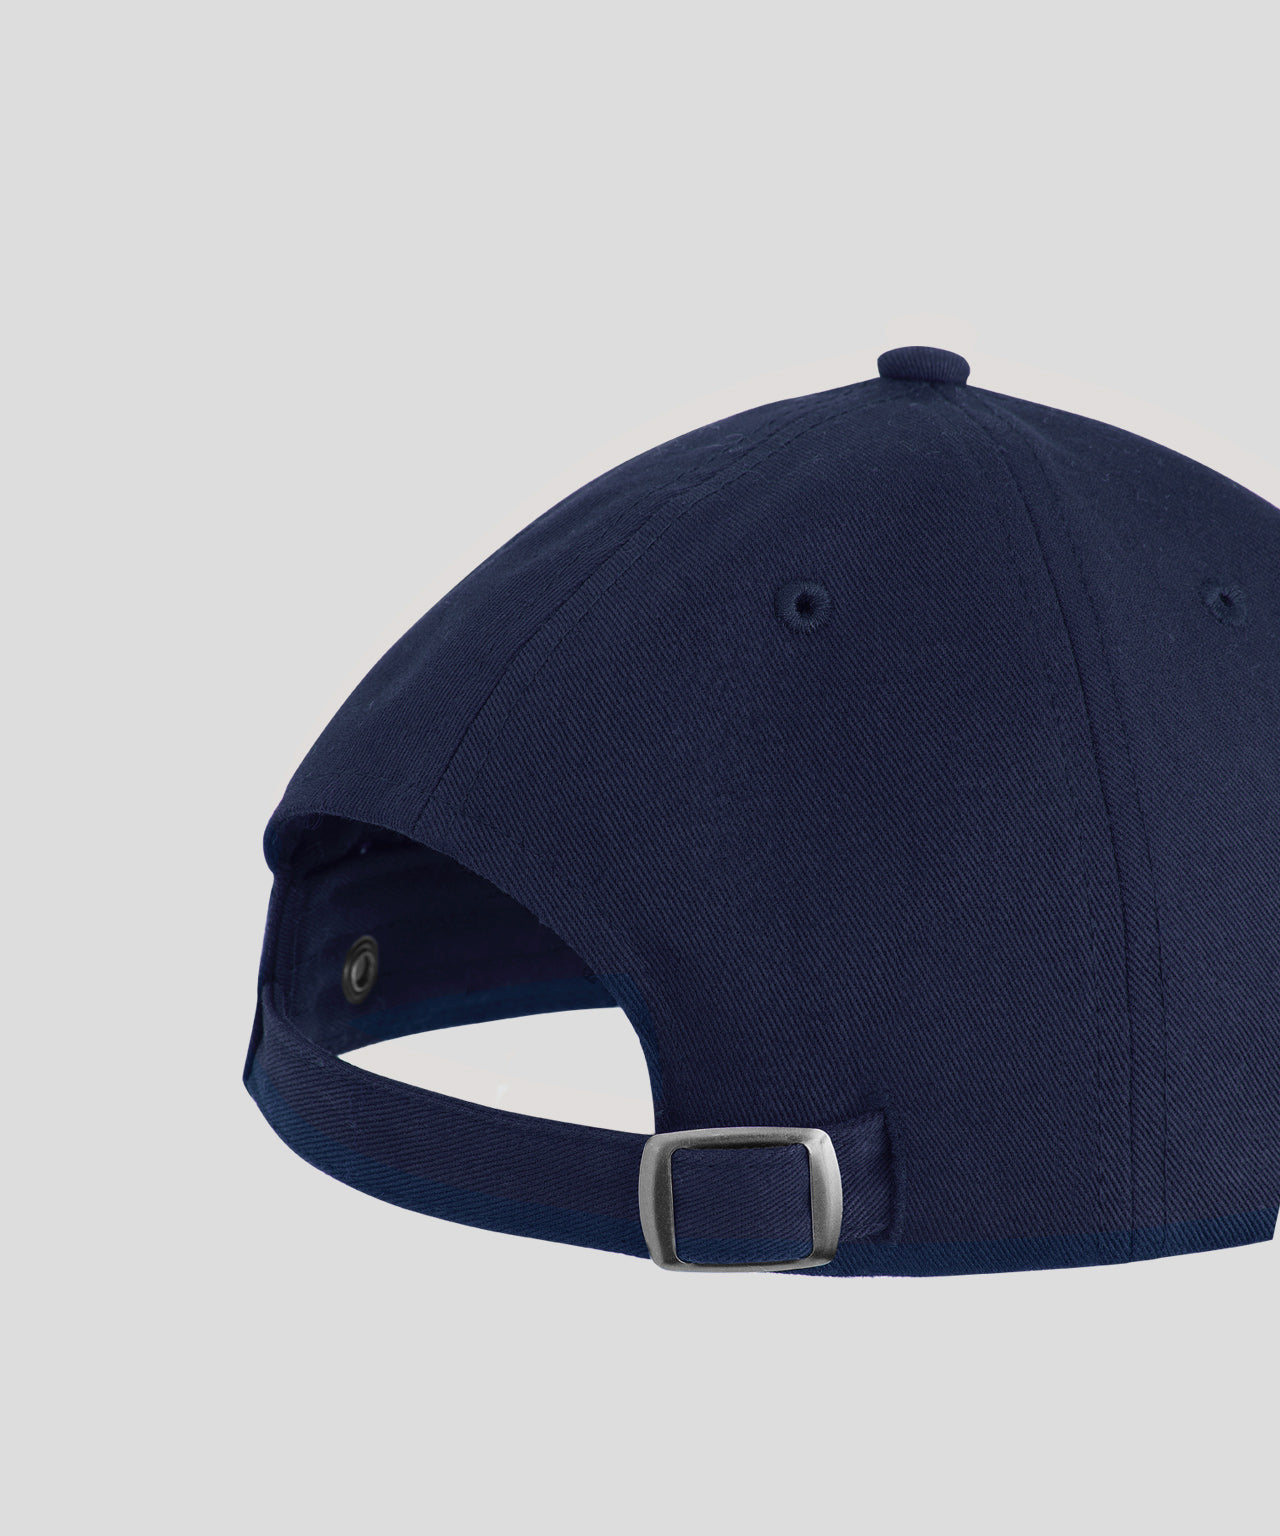 Coach Cap MOM - navy